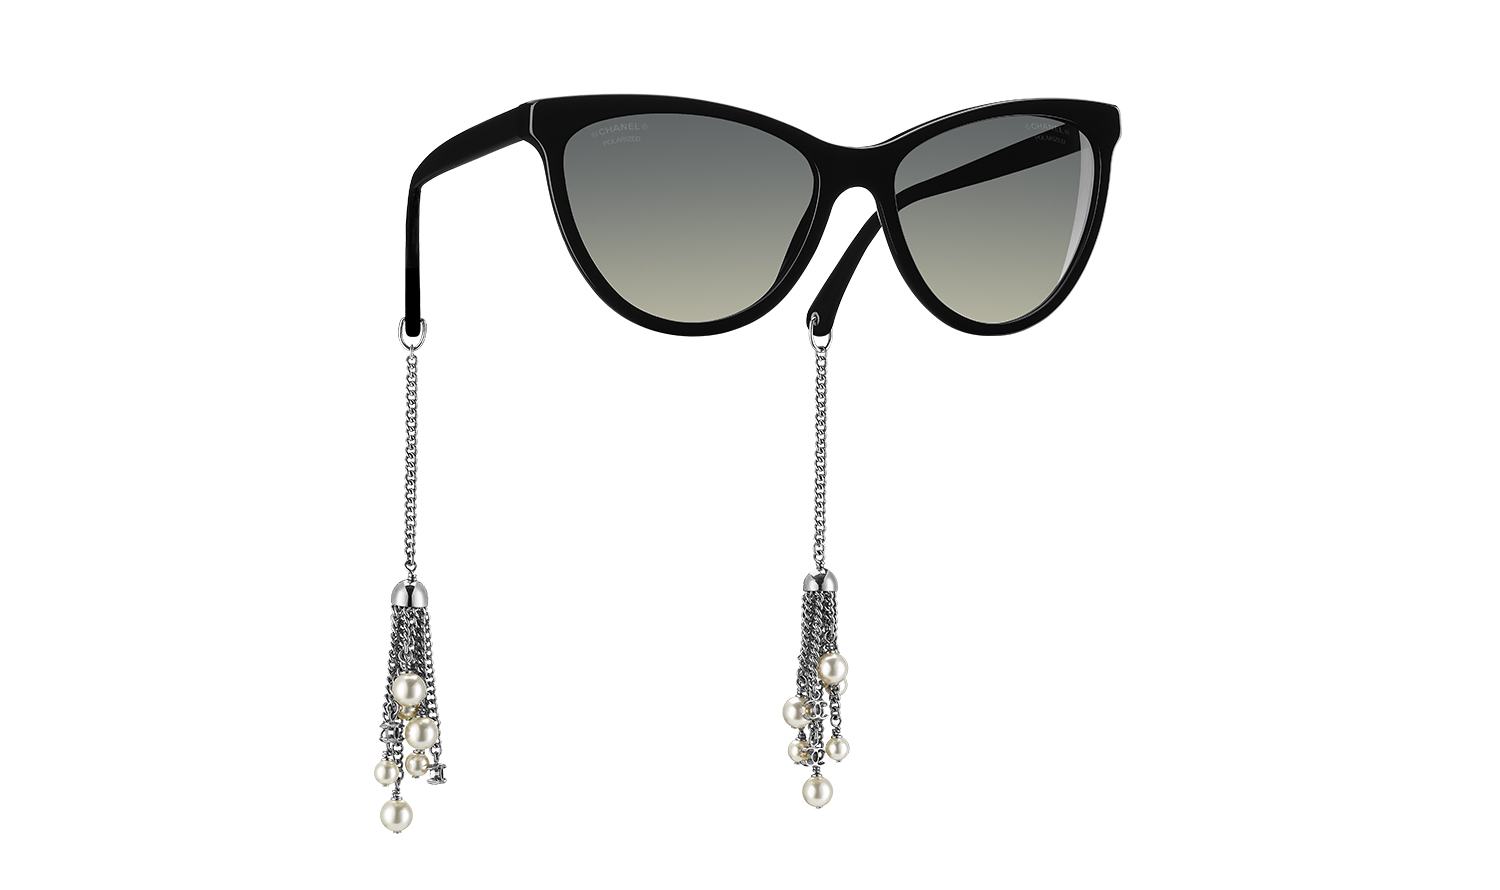 Precious Pearls Chanel S New Eyewear Collection Makes A